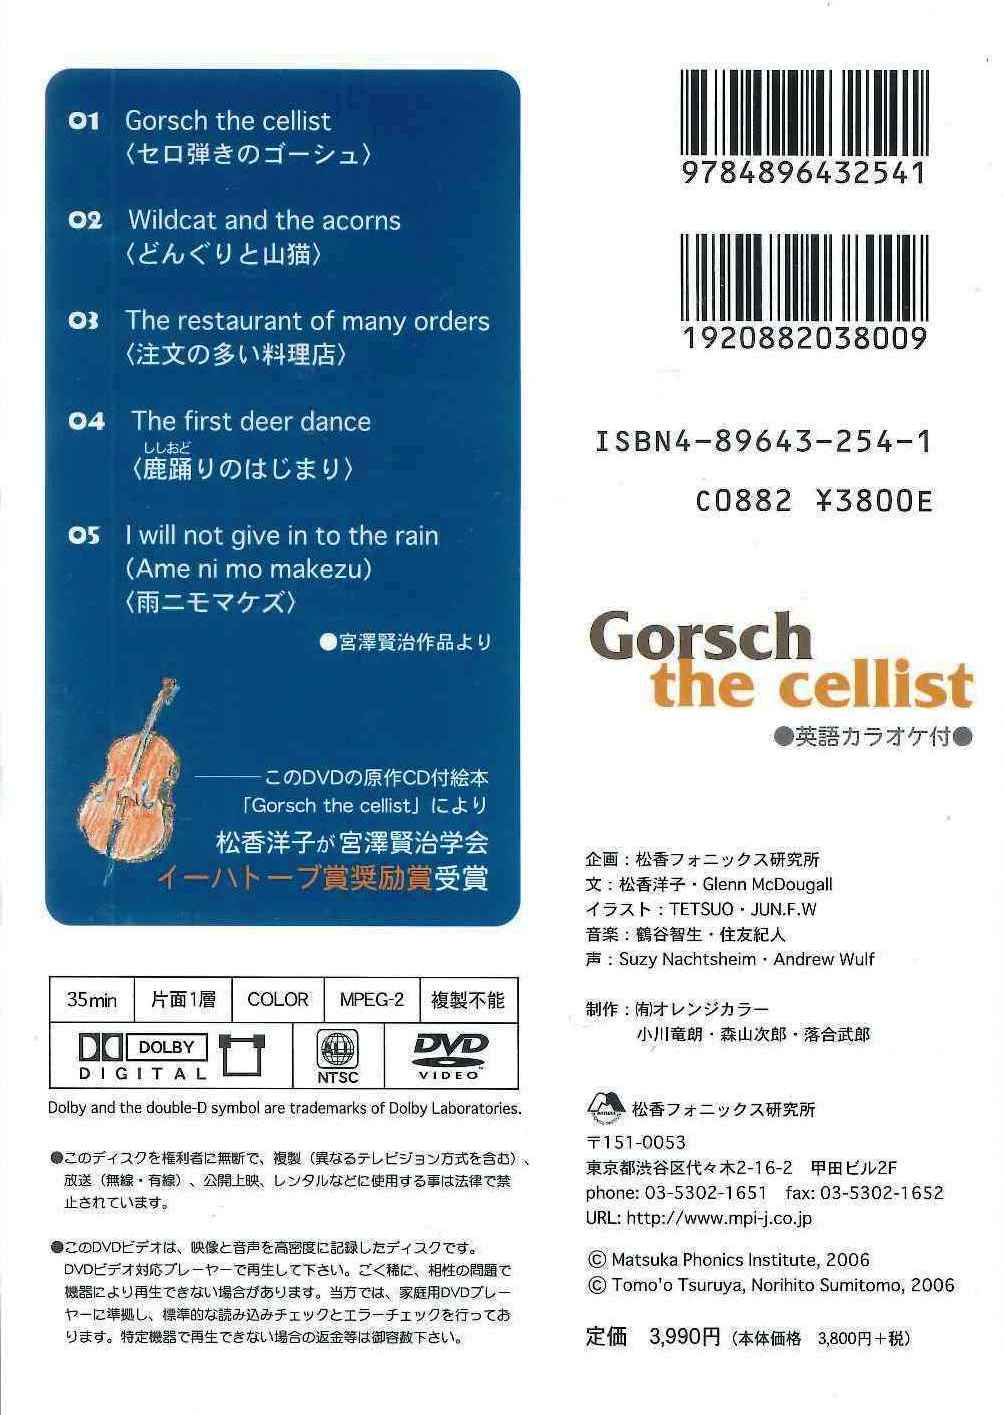 Gorsch the cellist DVD